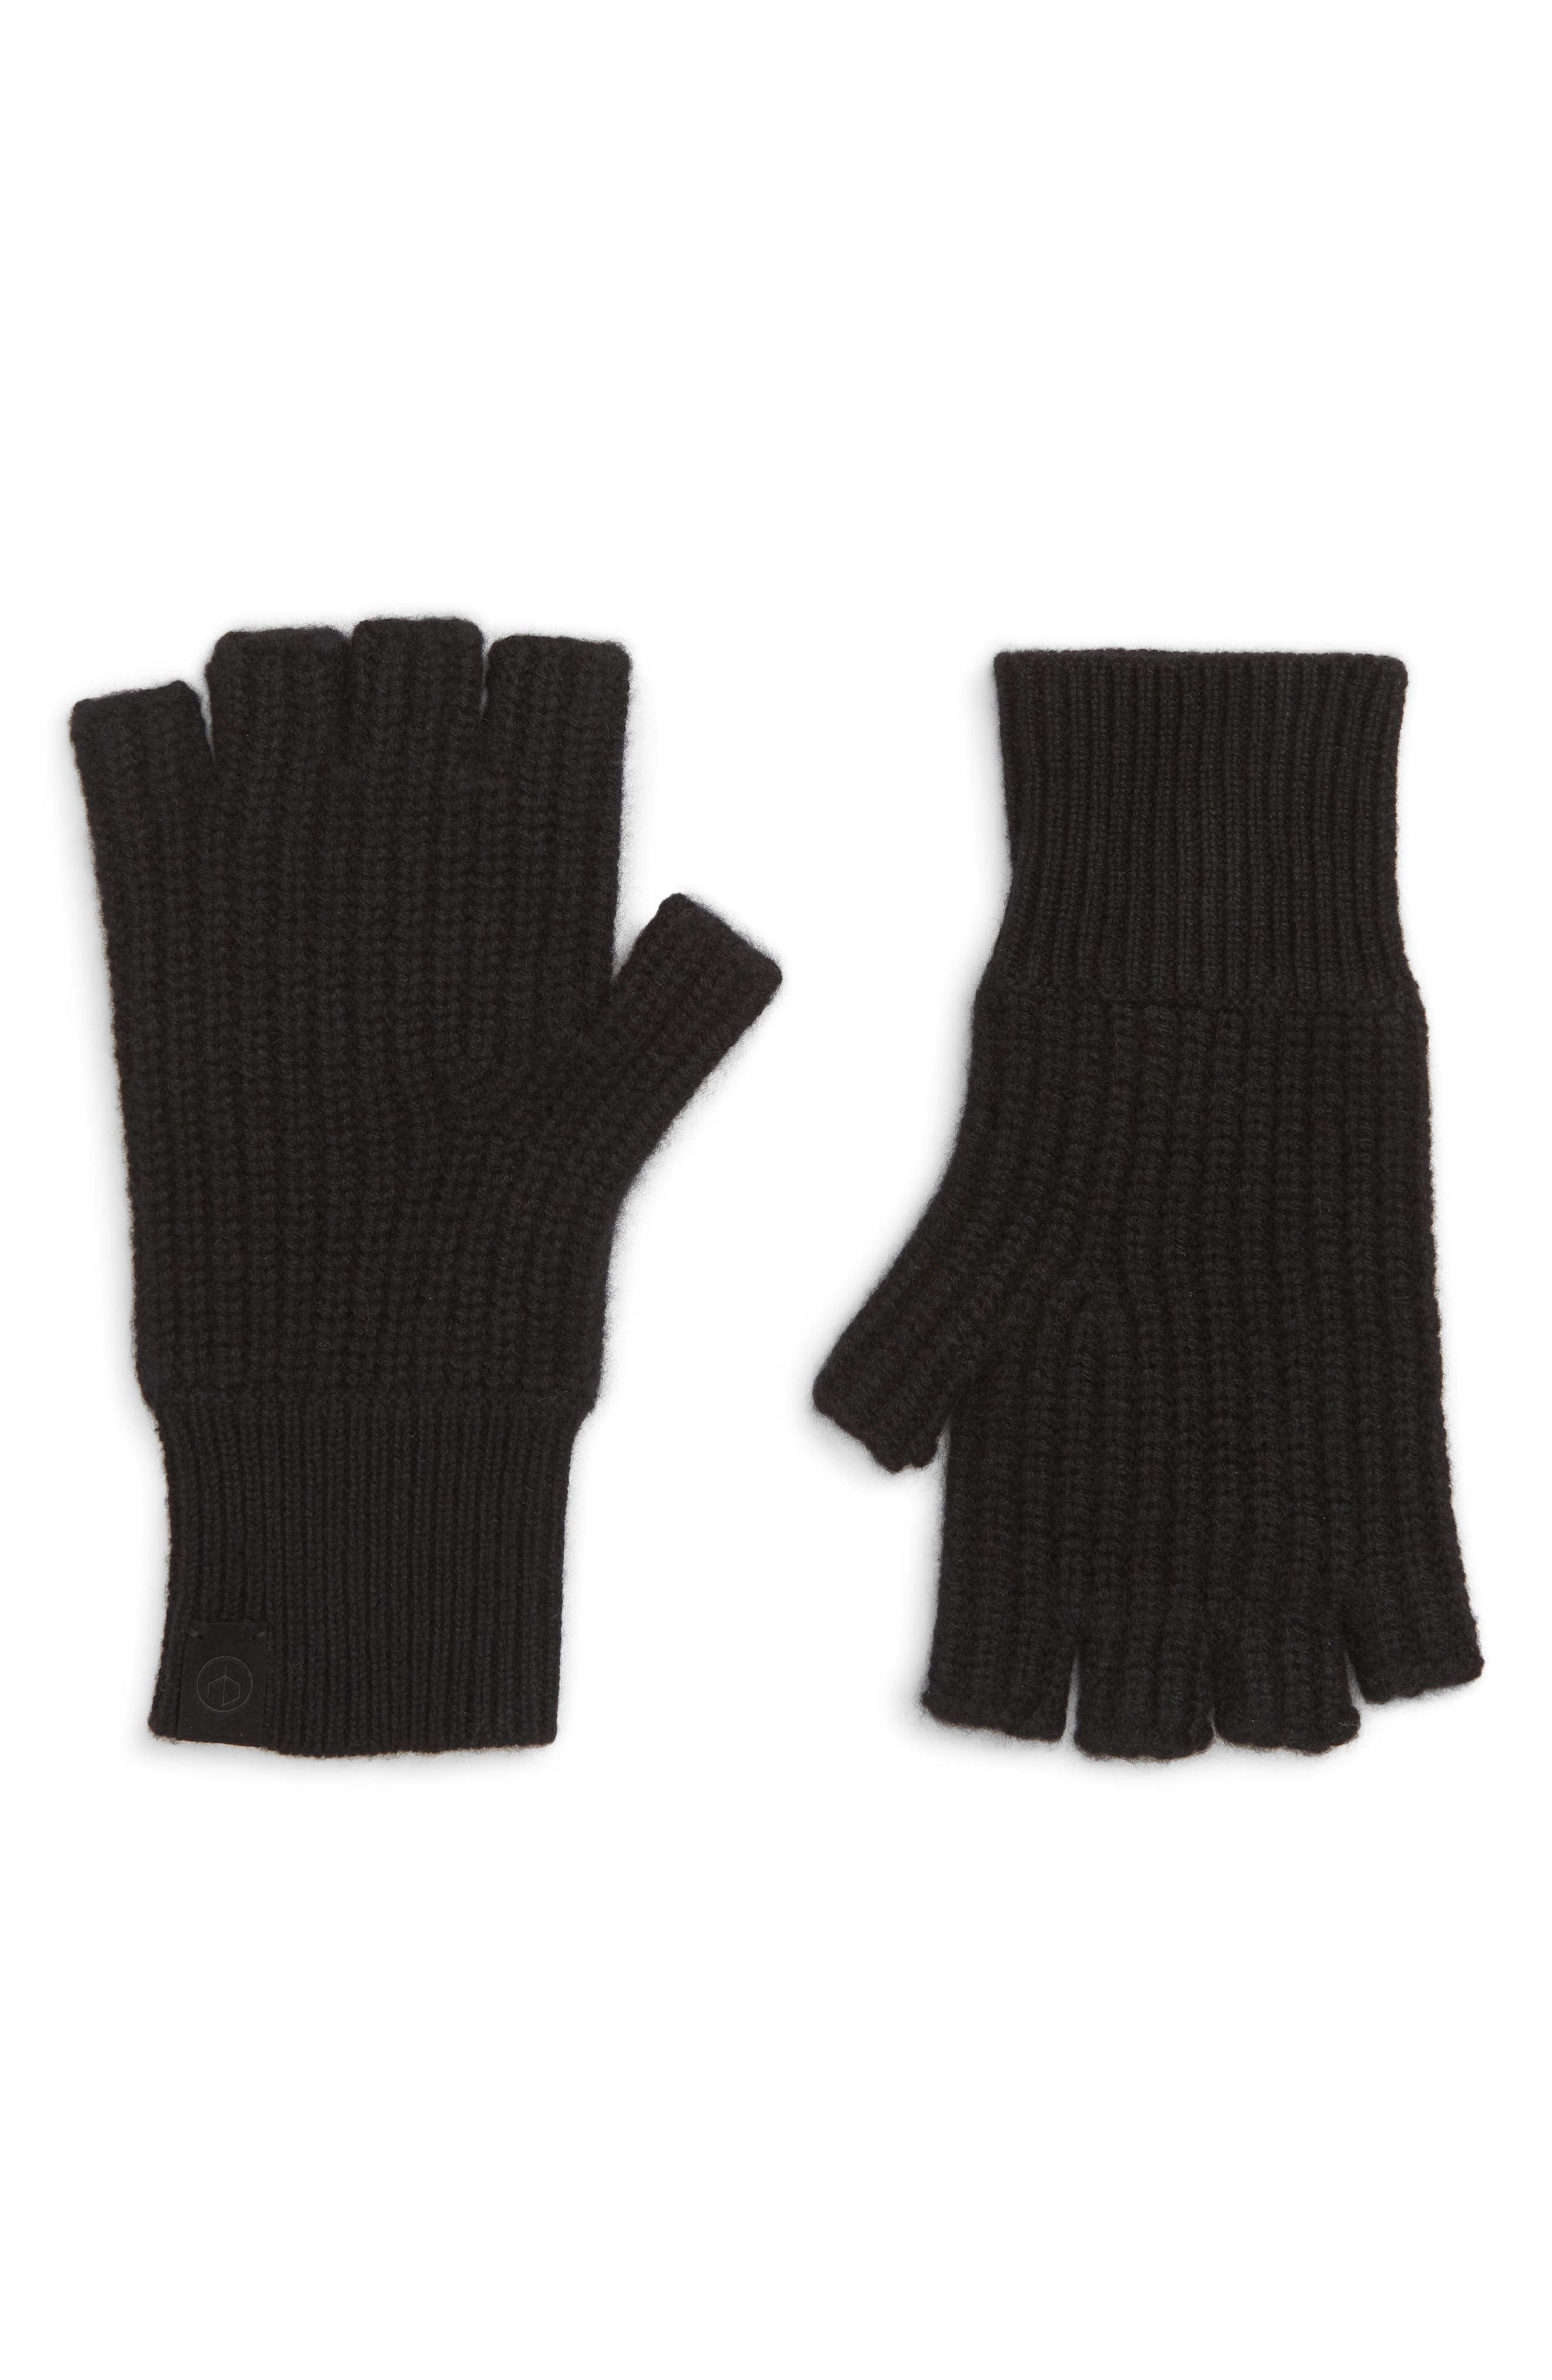 Ace Rib Knit Cashmere Fingerless Gloves,                         Main,                         color, 001